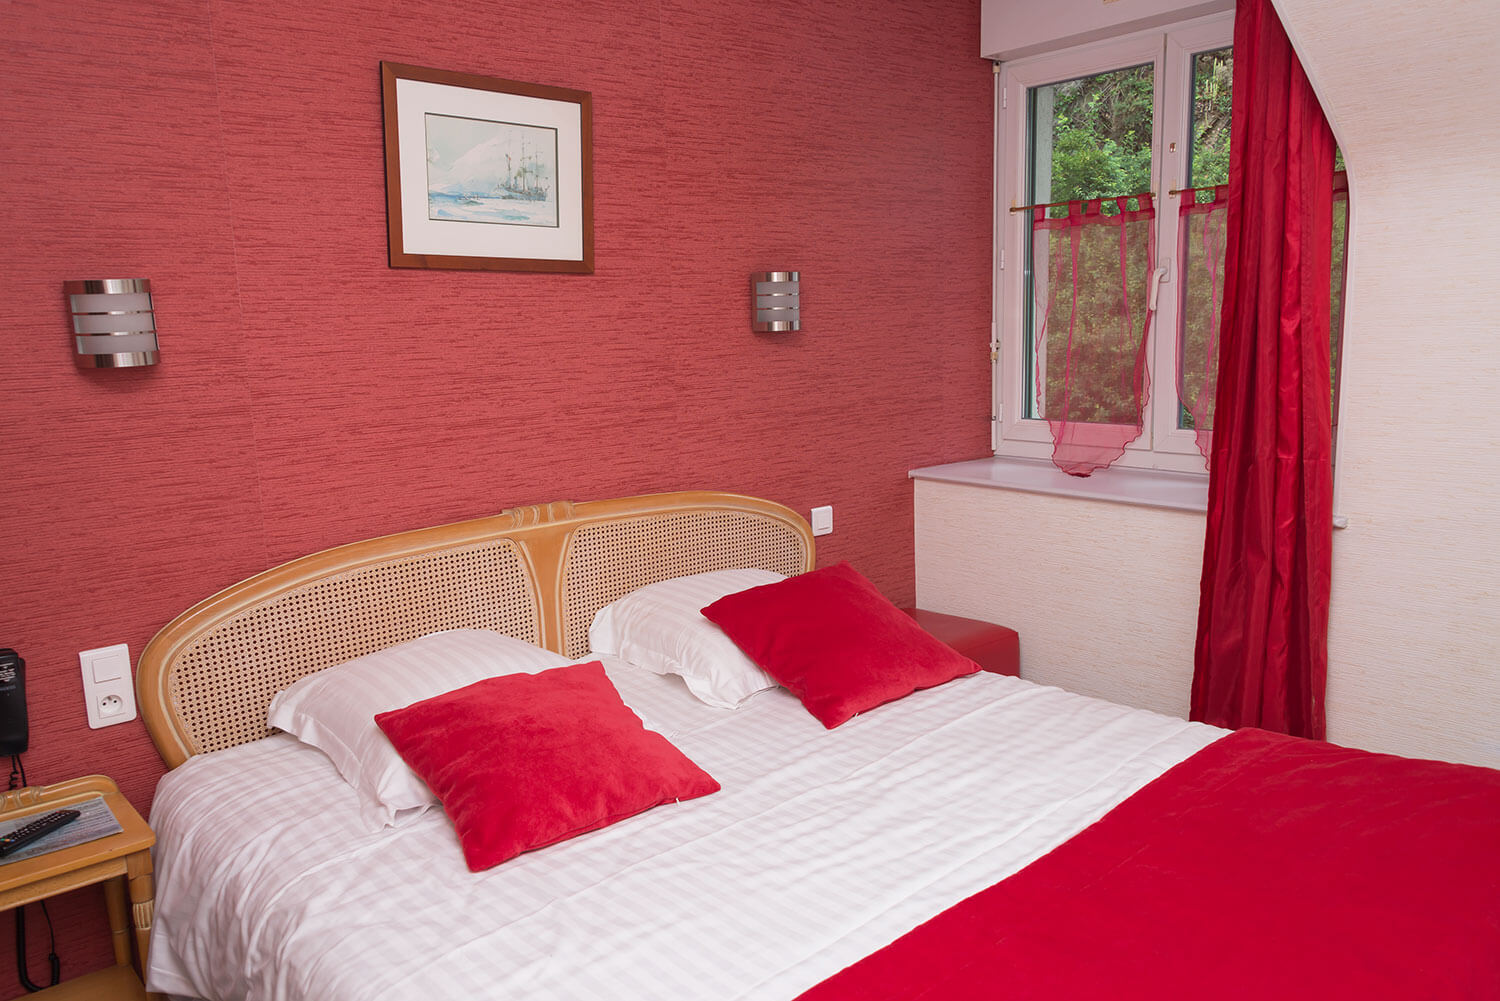 Chambre rouge2